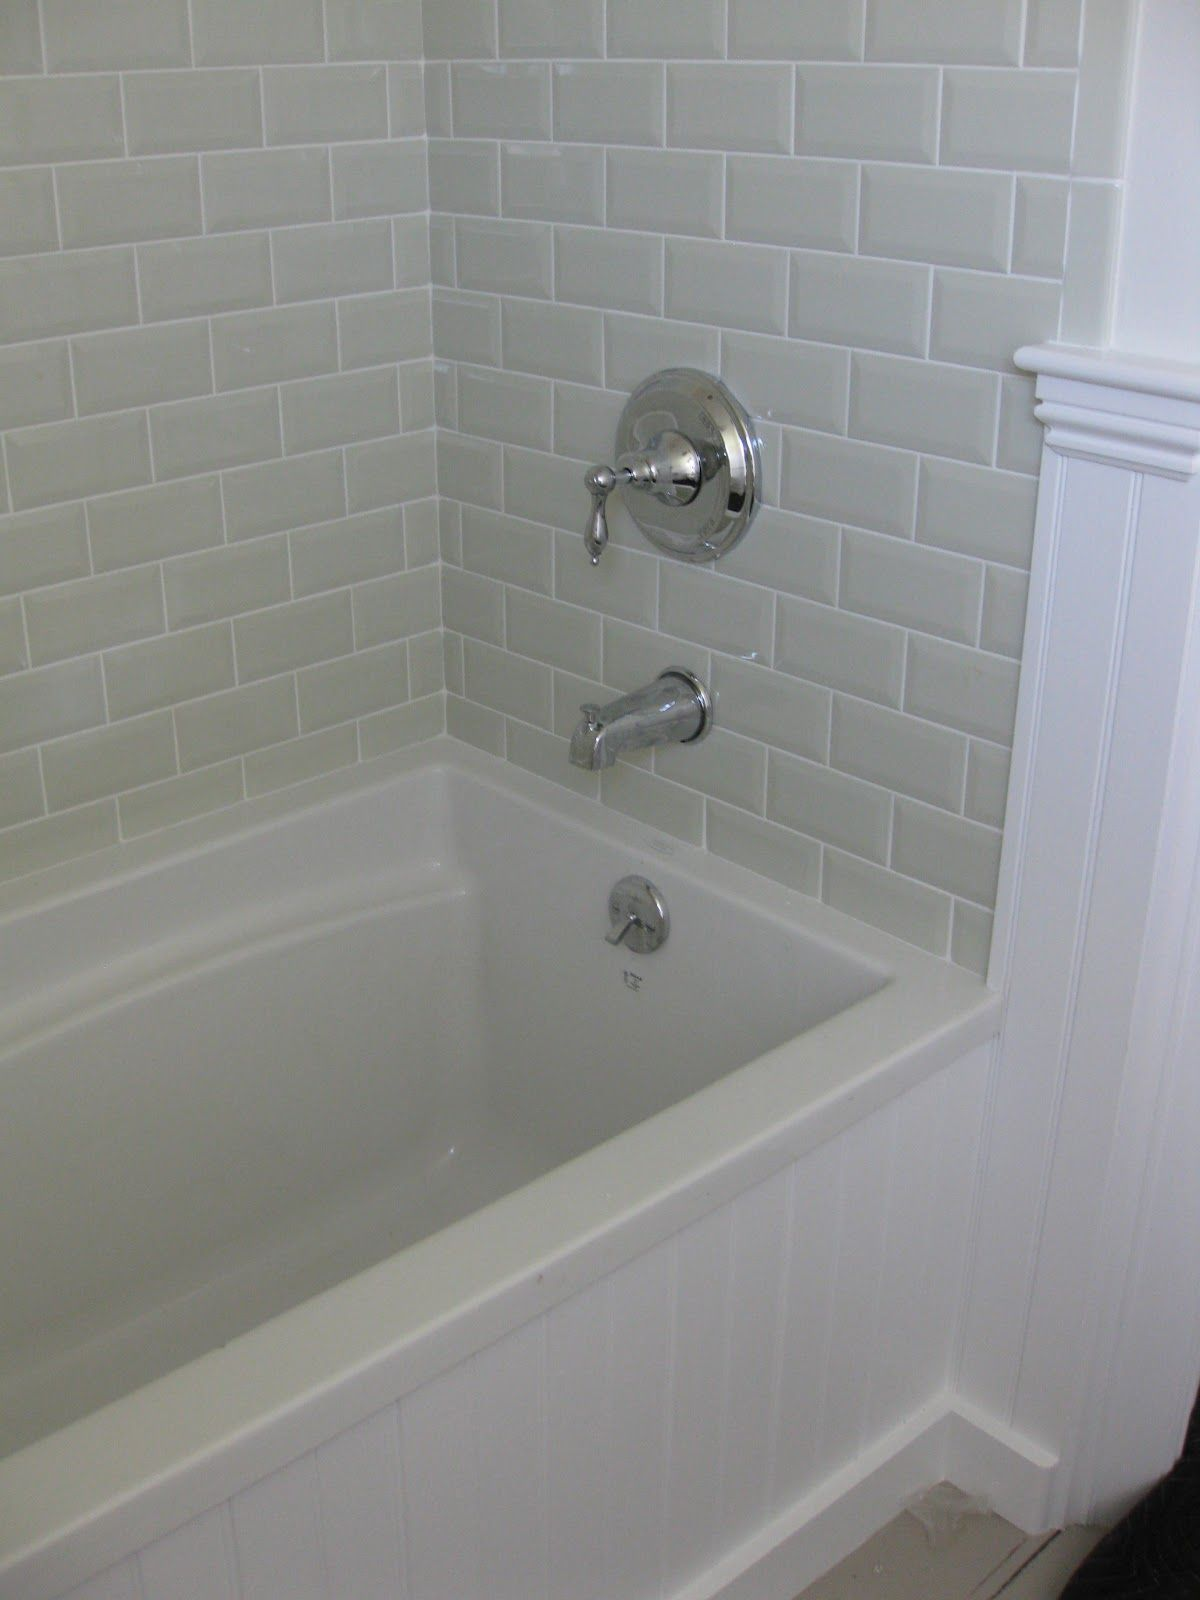 Beveled Subway Tile Ensuite Pinterest Subway Tiles Master Bathrooms And Beveled Subway Tile